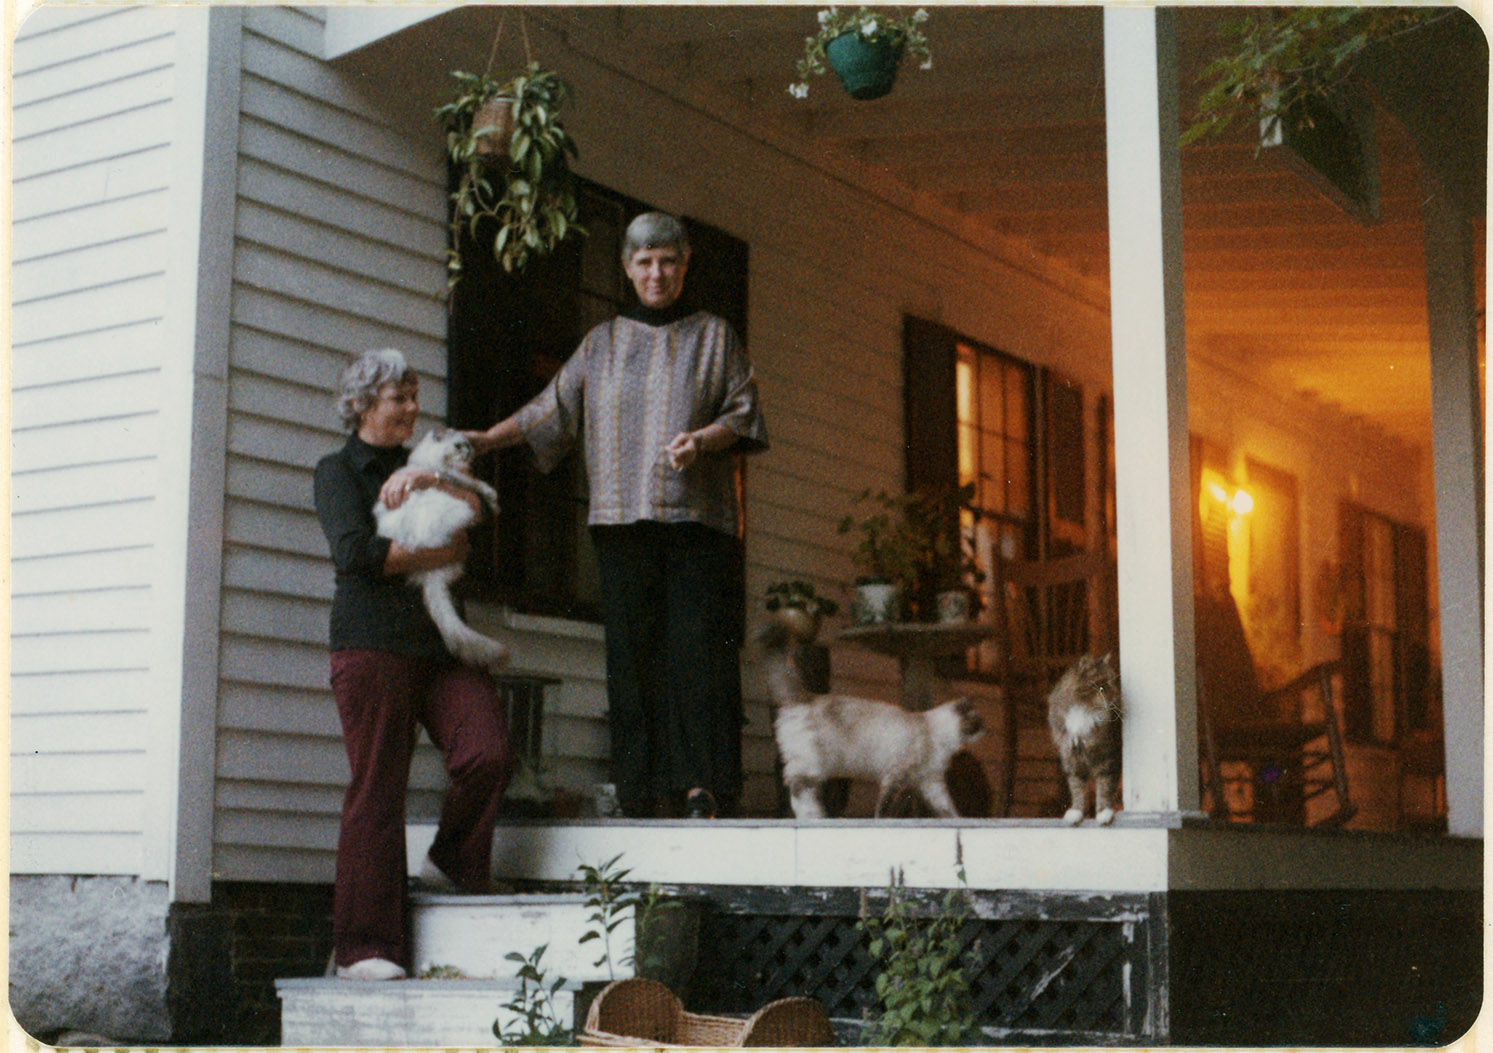 Depiction of Abramson, Johnson, and cats on the porch of their New Salem home, 1977